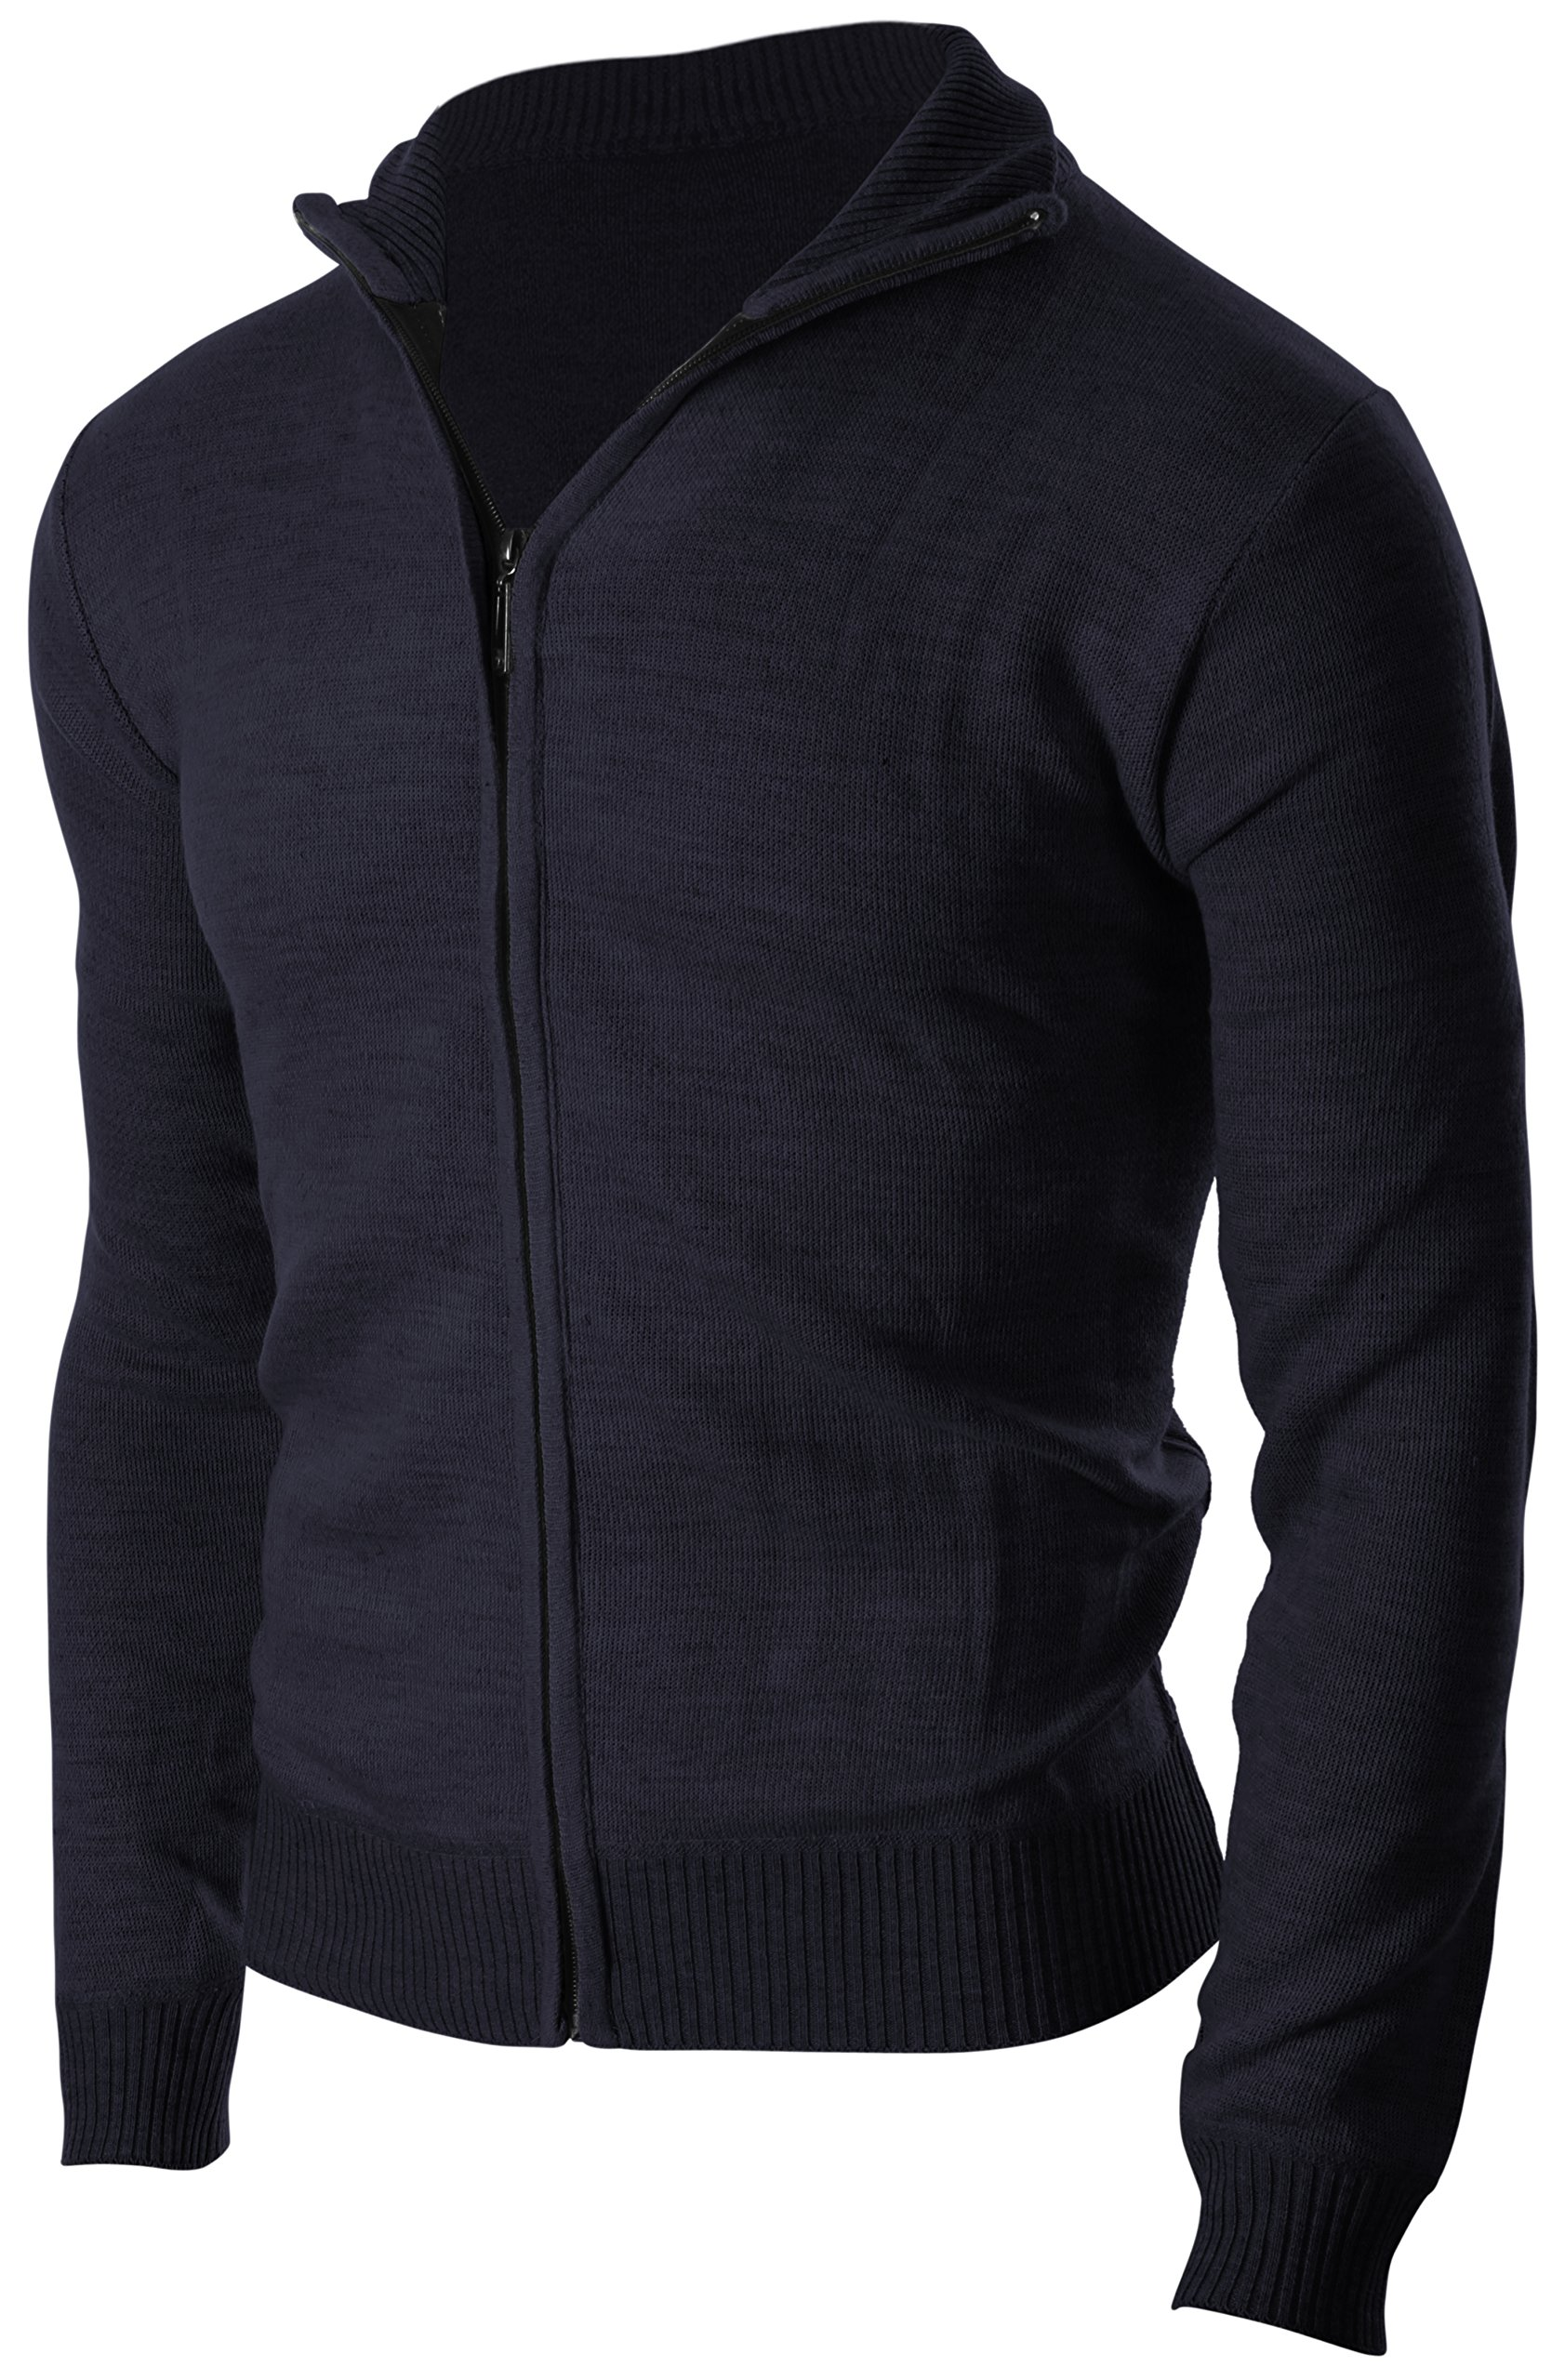 Enimay Men's Soft Casual Business Casual Full Zip Up Turtleneck Sweater Cardigan Navy XX-Large by Enimay